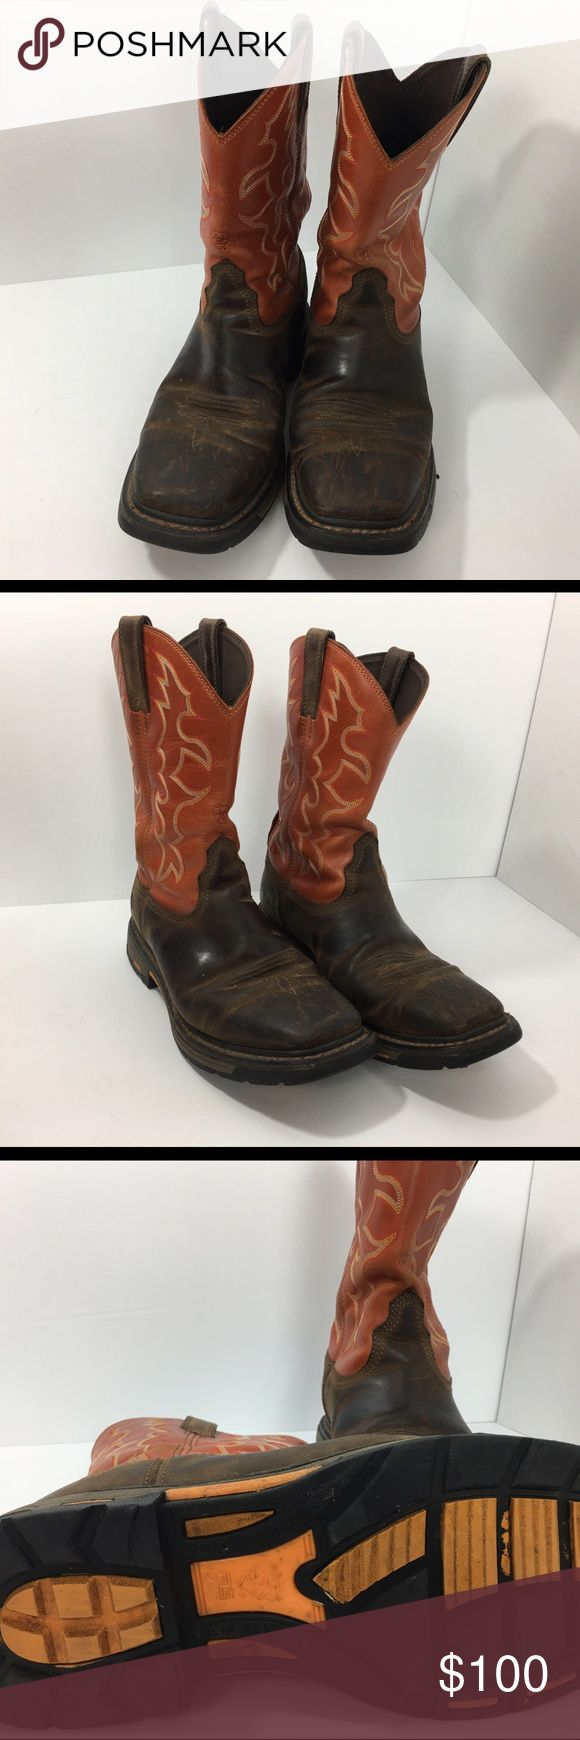 ARIAT Size 11D Mens Workhog Square Toe Work Boots Mens Ariat Work Boots Size 11 D Pre Owned Scuffs on Boots Square Toe Orange/Brown Slip Resistant Ariat Shoes Boots